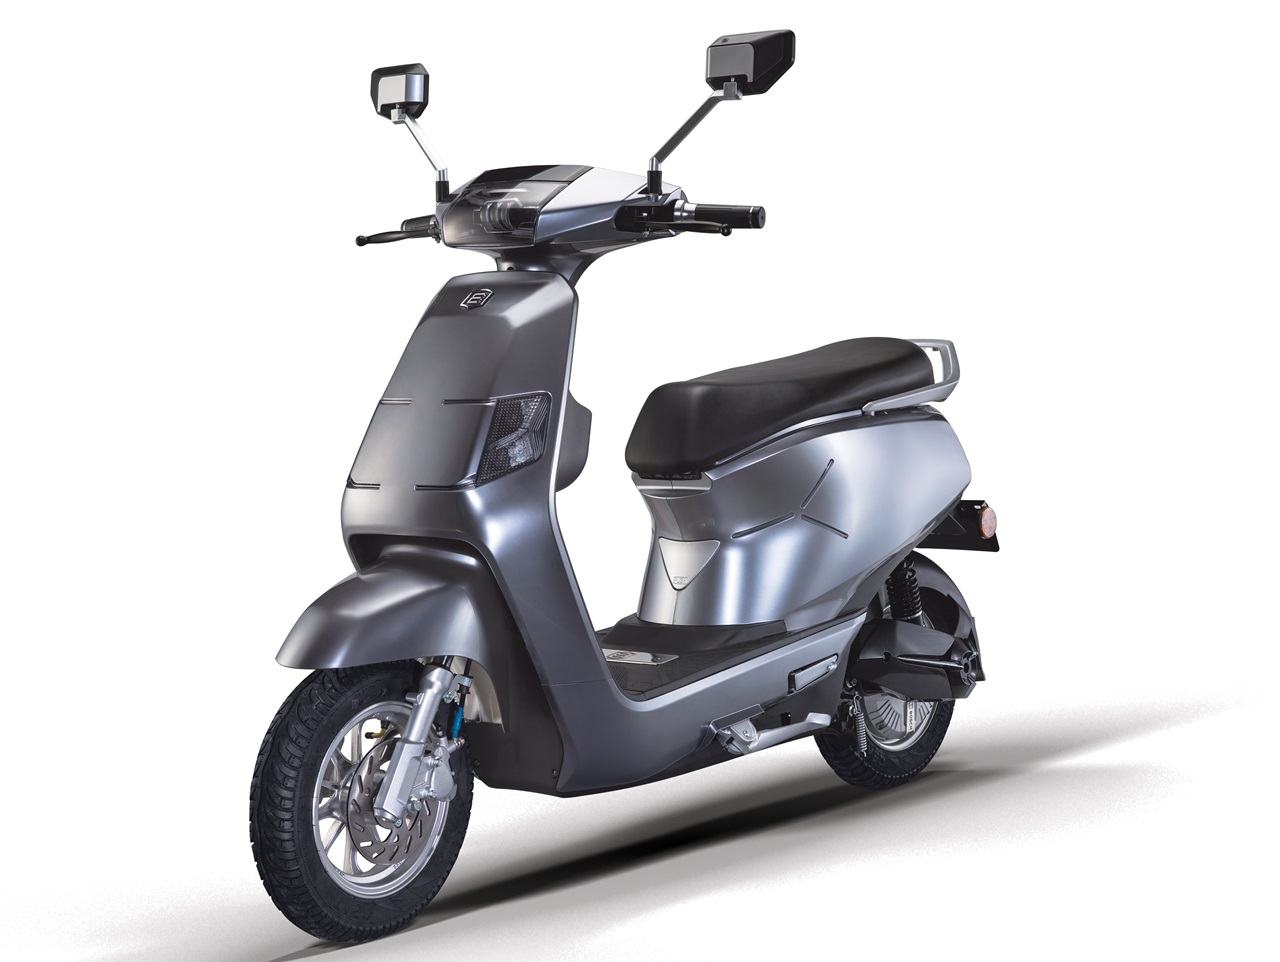 BGAUSS electric scooter specifications